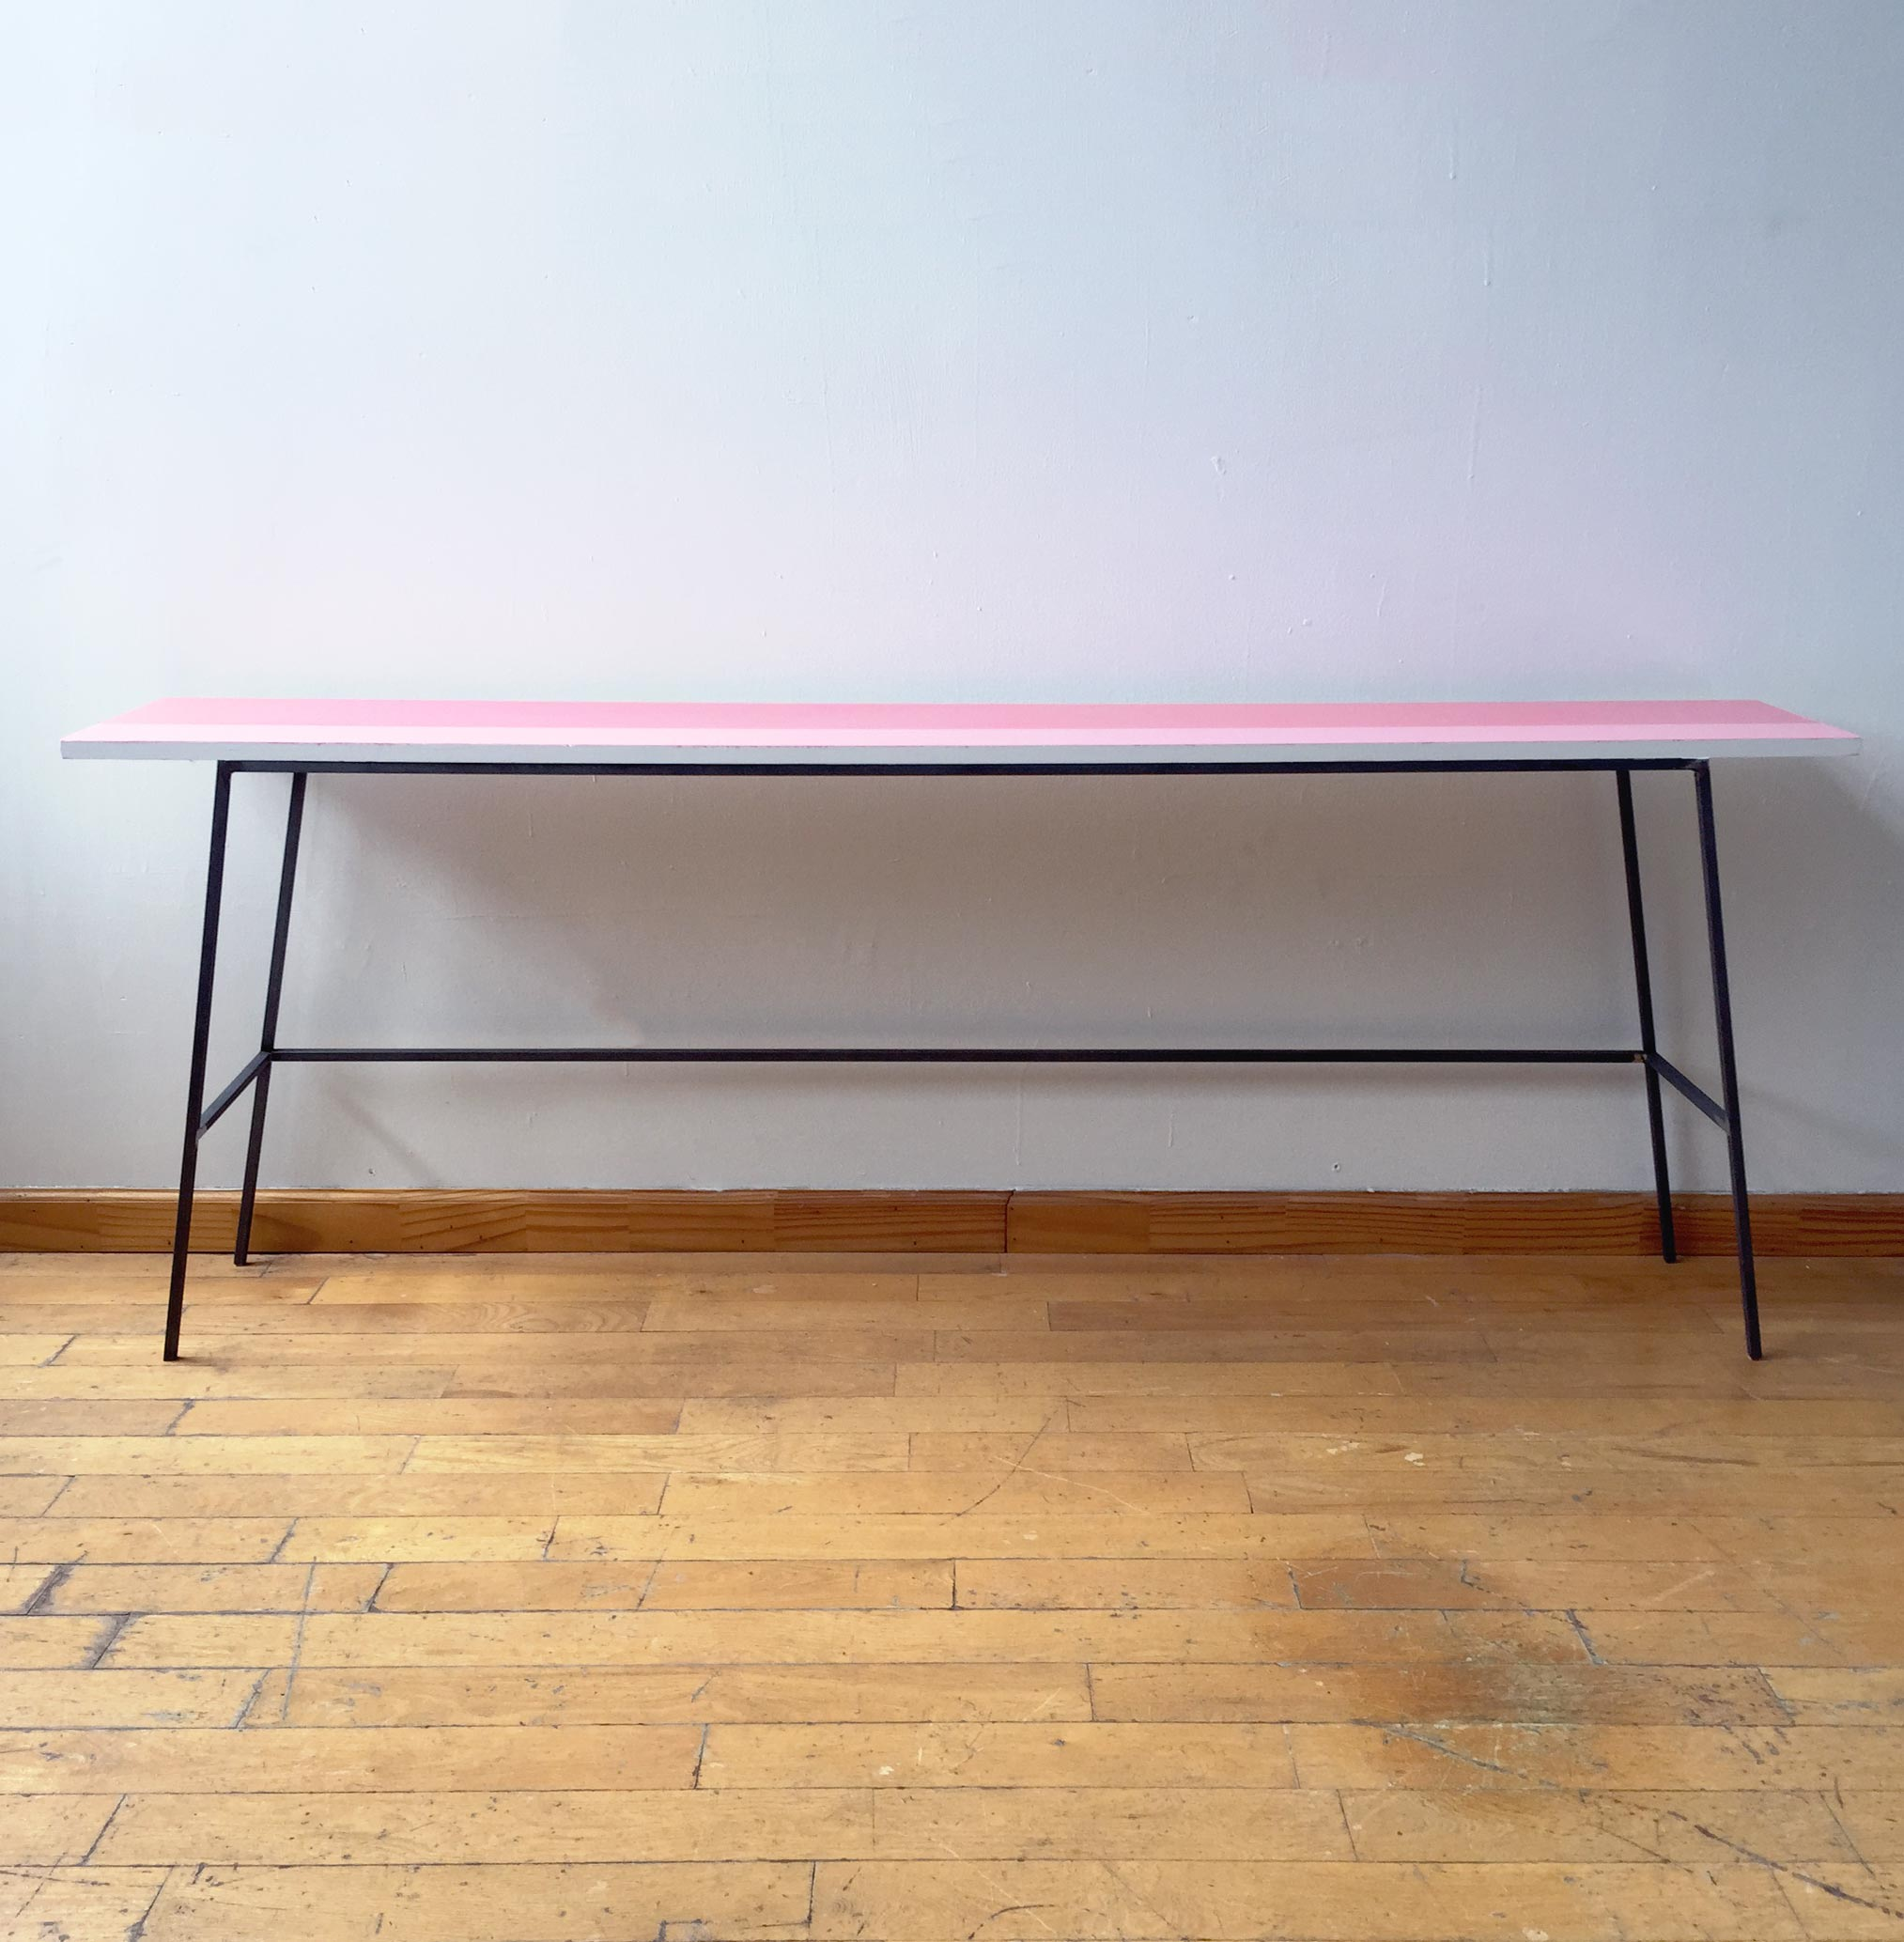 Table2_IMG_1363_front.jpg